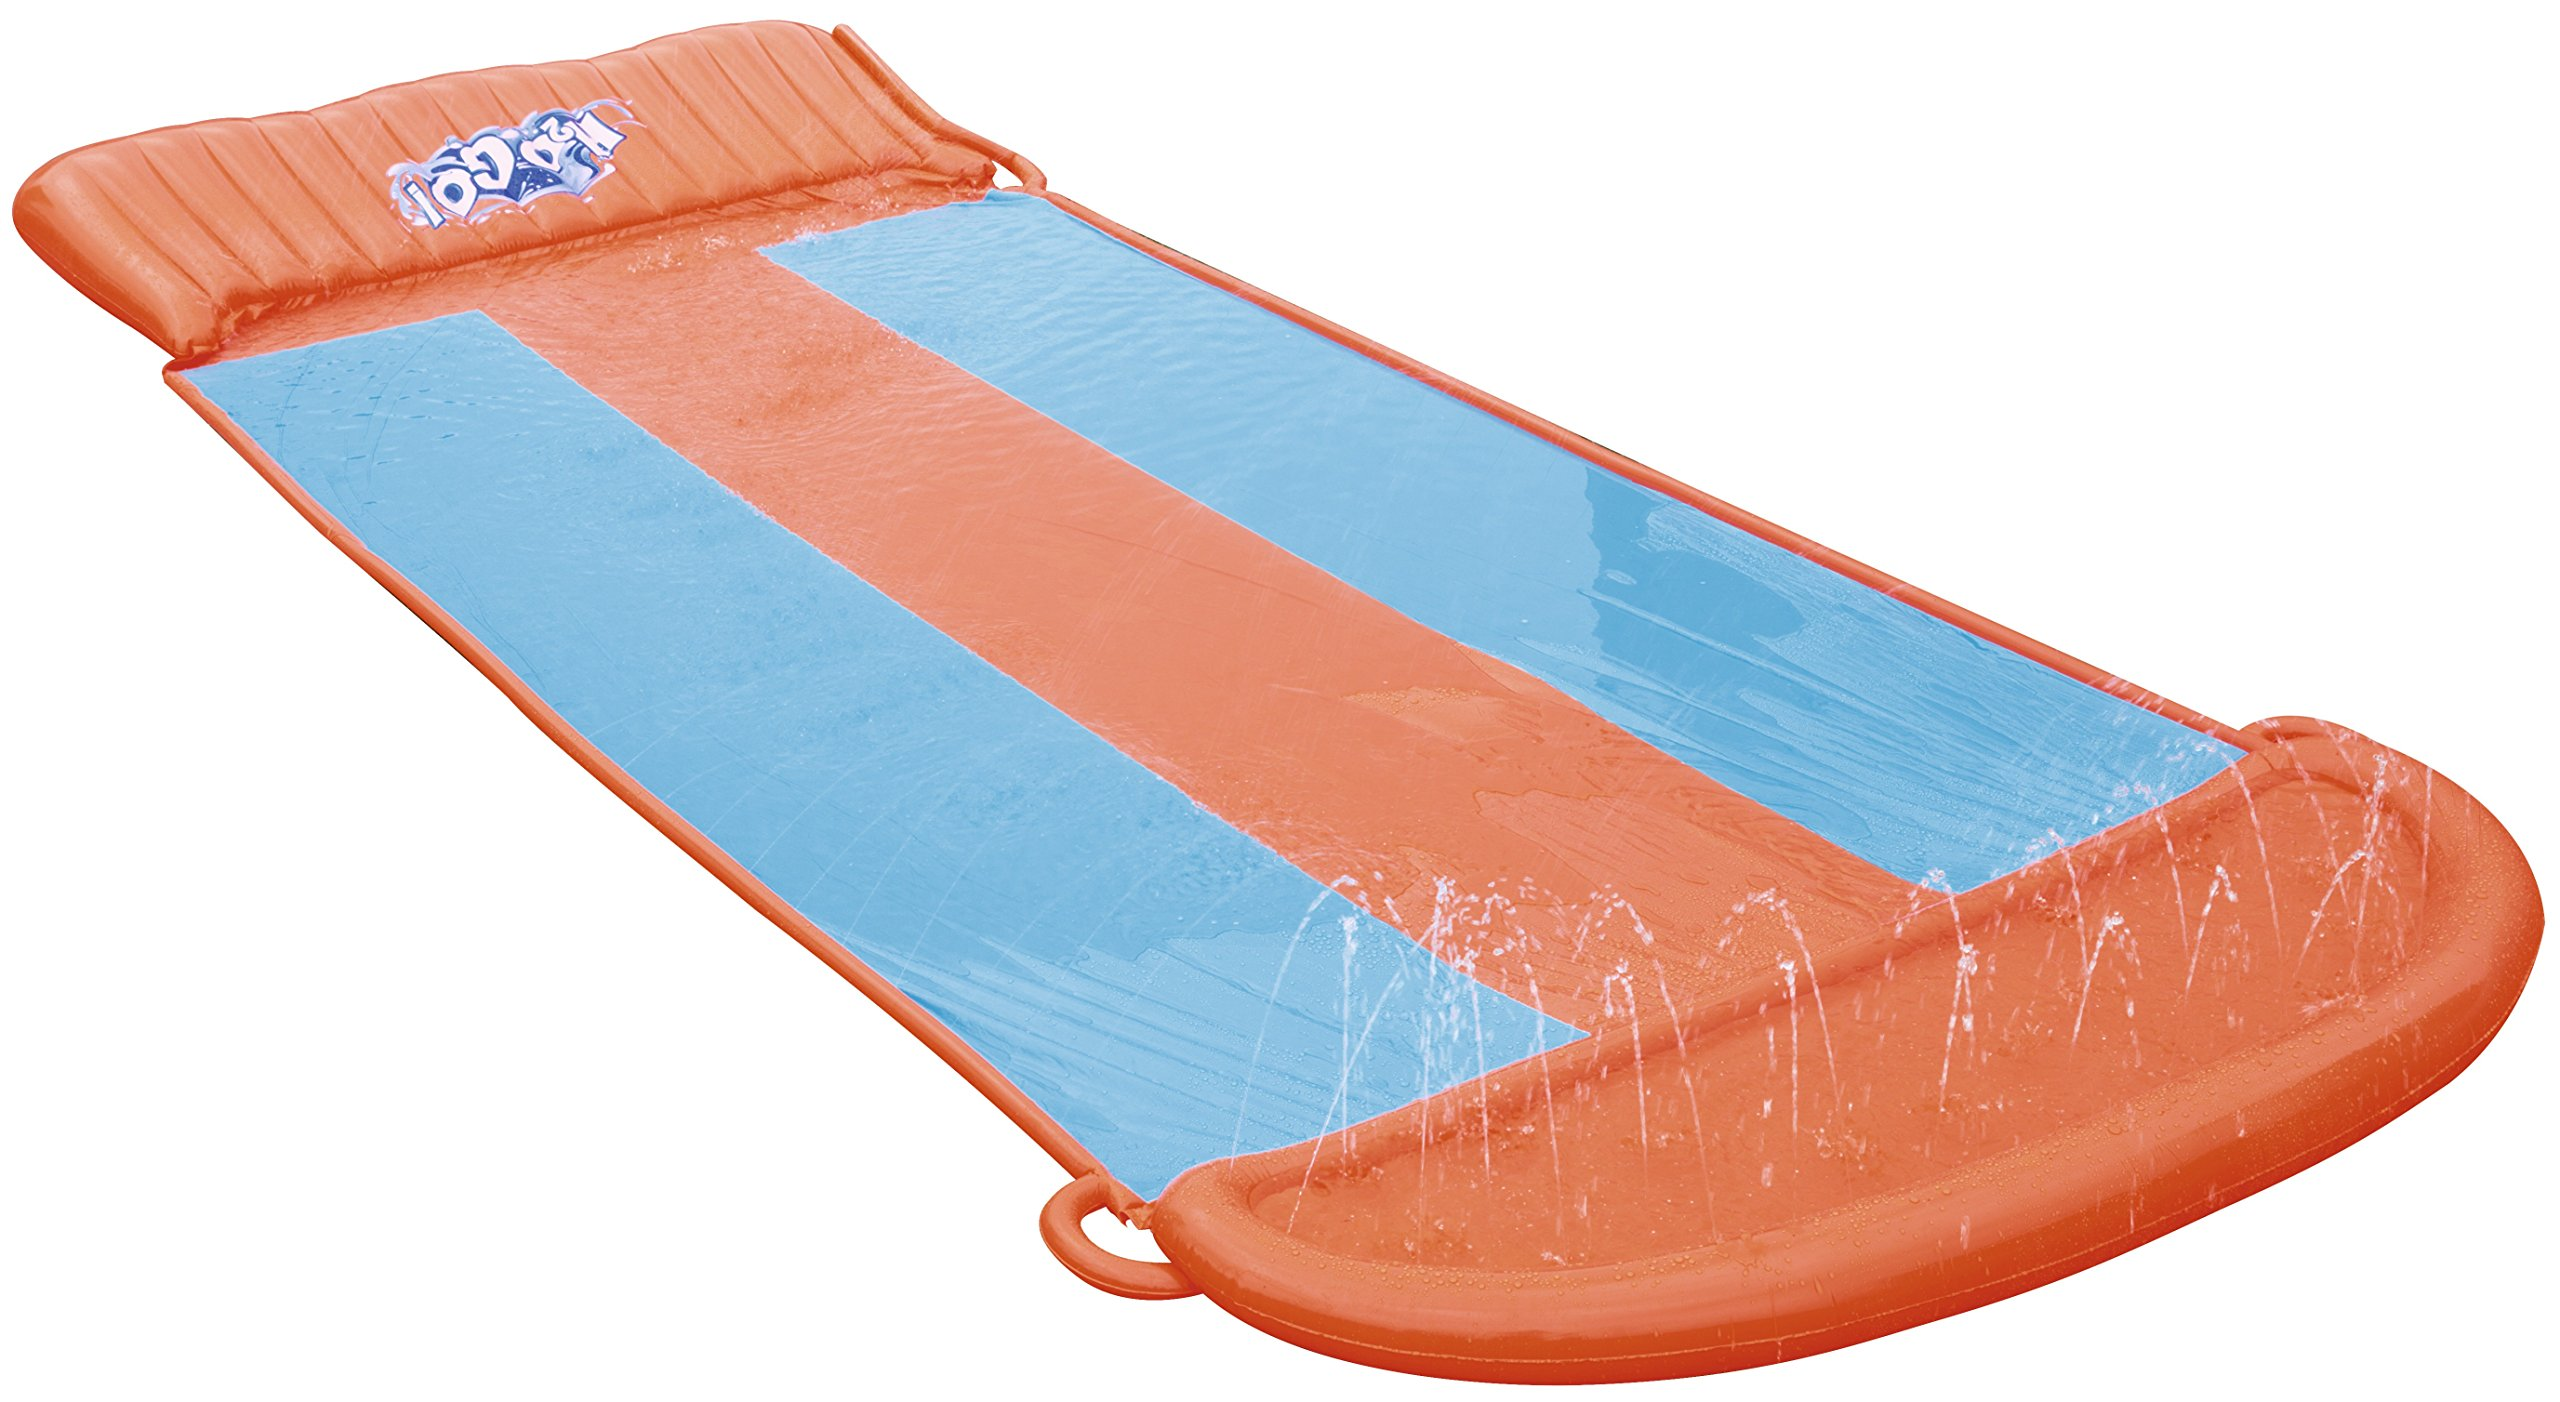 Bestway 5.5 m H2O Go! Triple Slider Water Slide (Orange/Blue) by Bestway